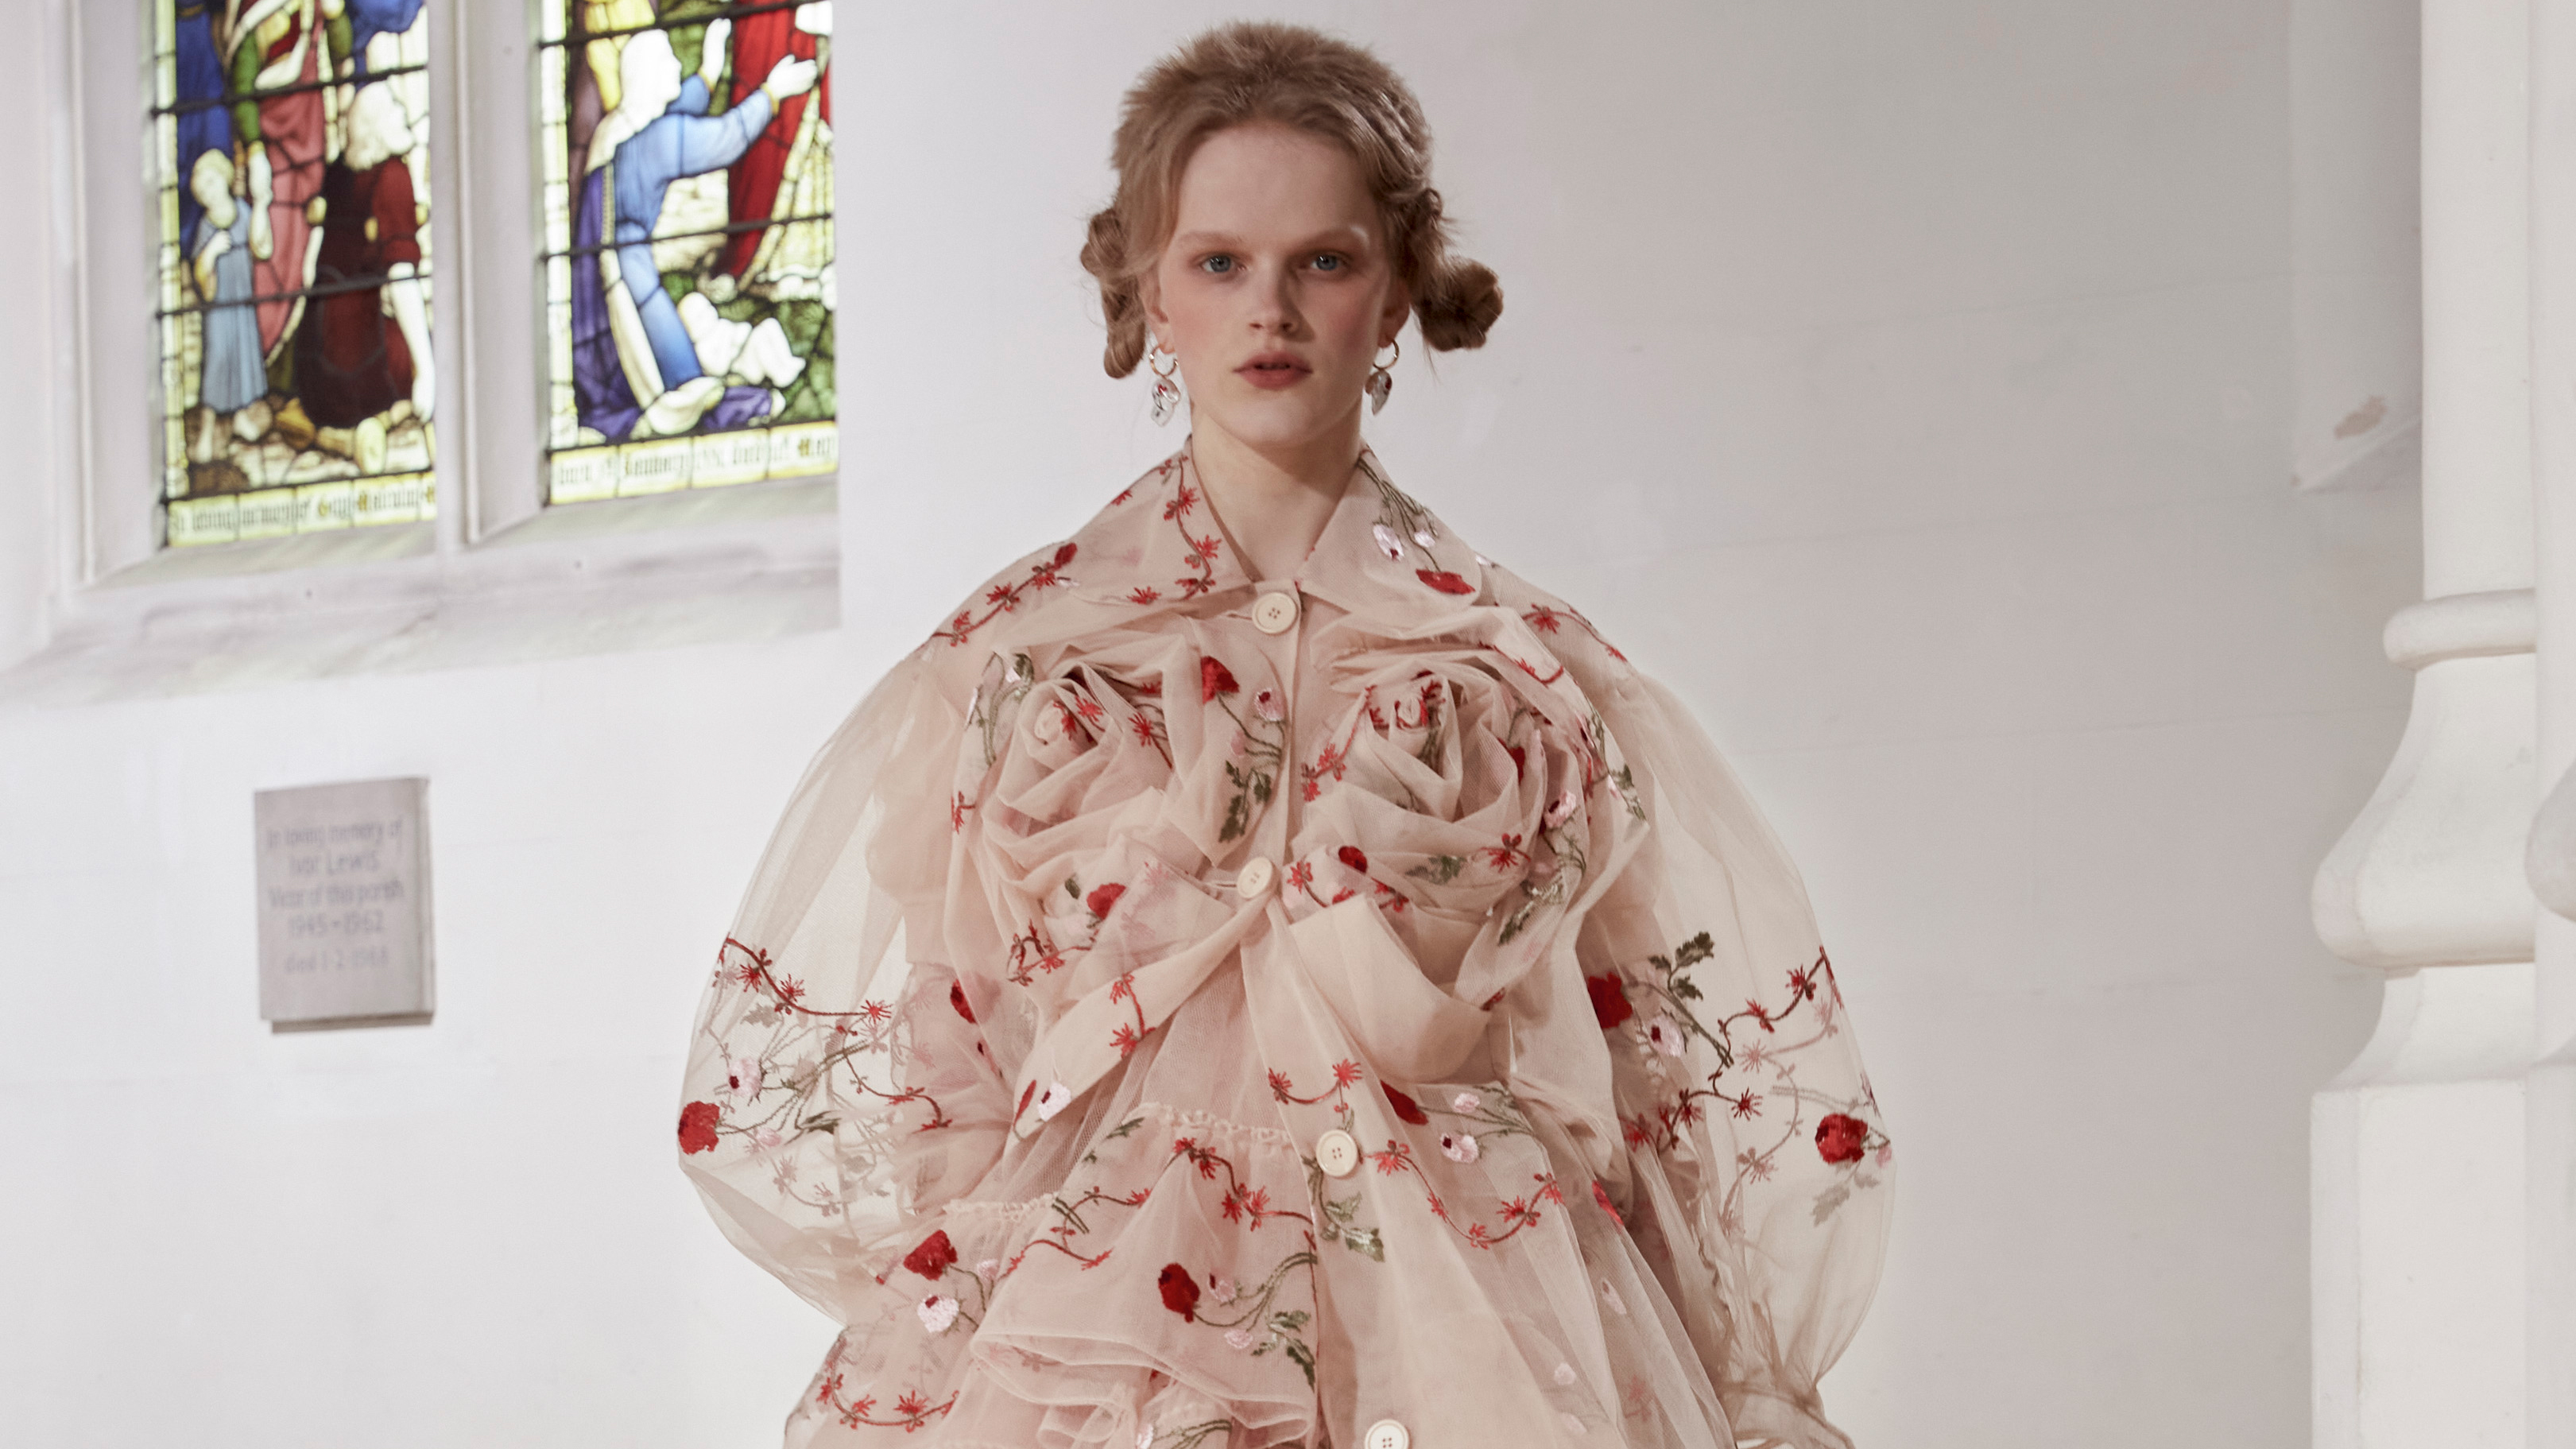 Simone Rocha Fall 2021 is Downright Spellbinding